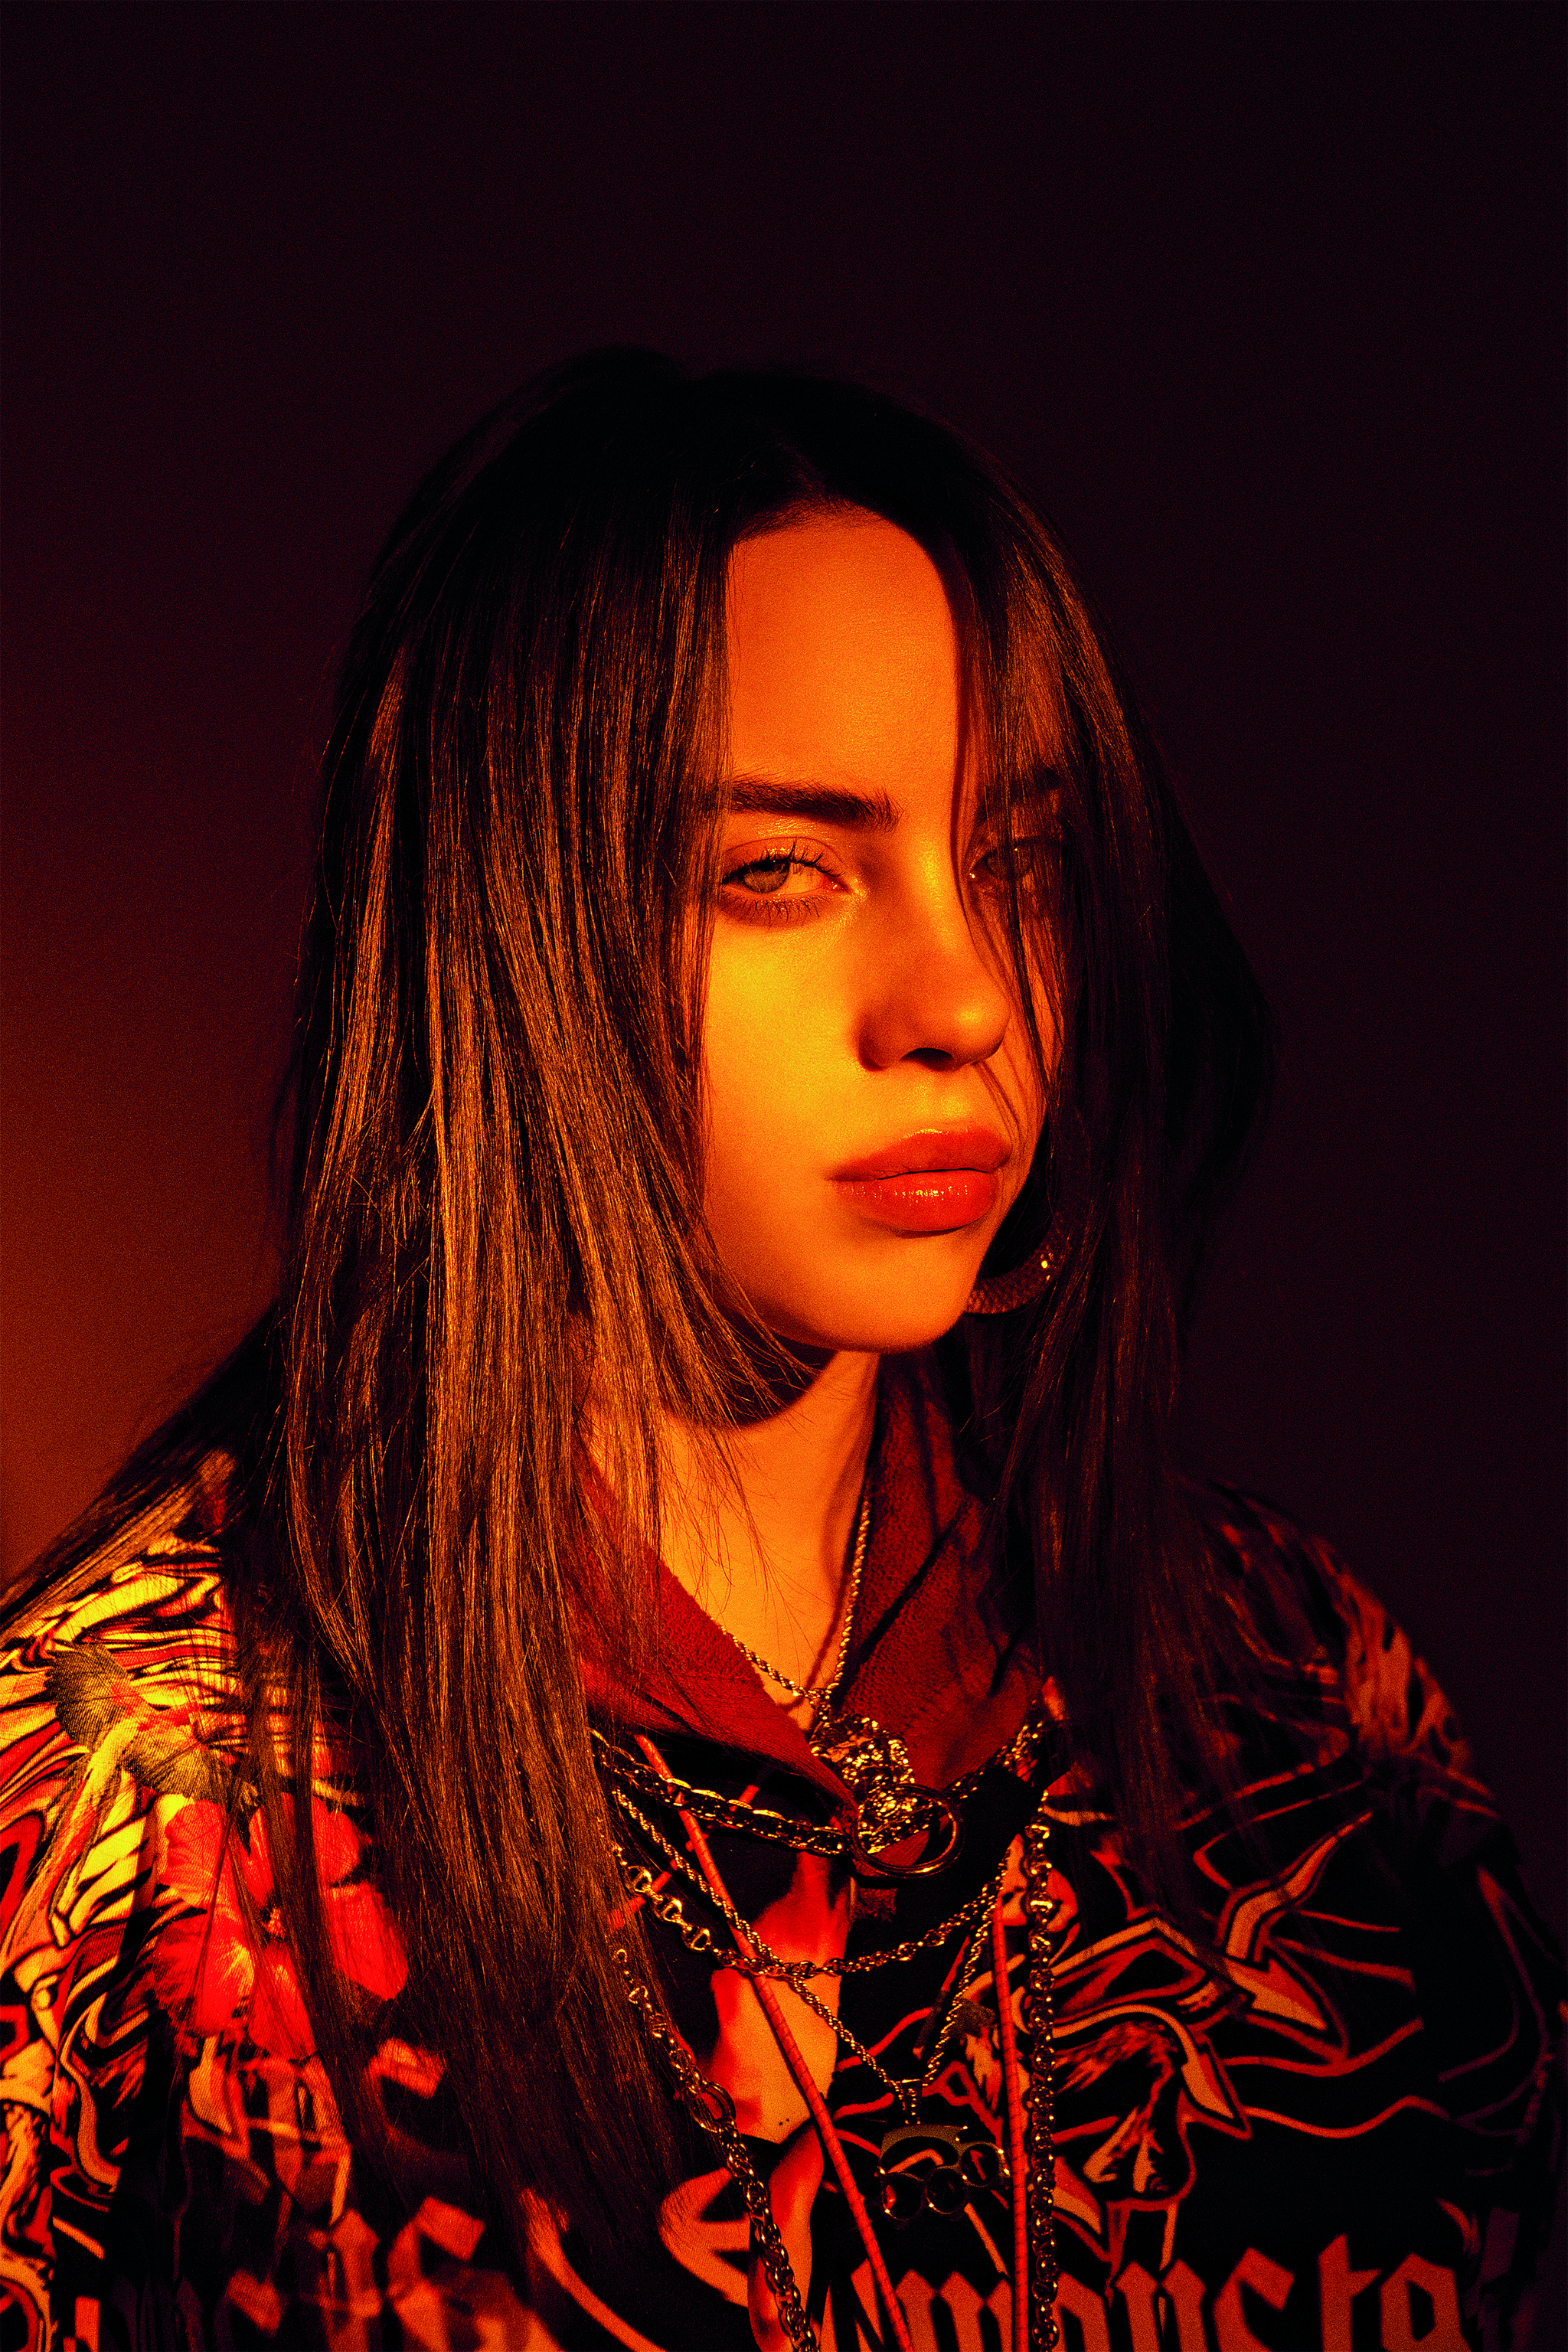 RE_BILLIESELECT181217_BillieEilish_Album_PKG_04797.jpg